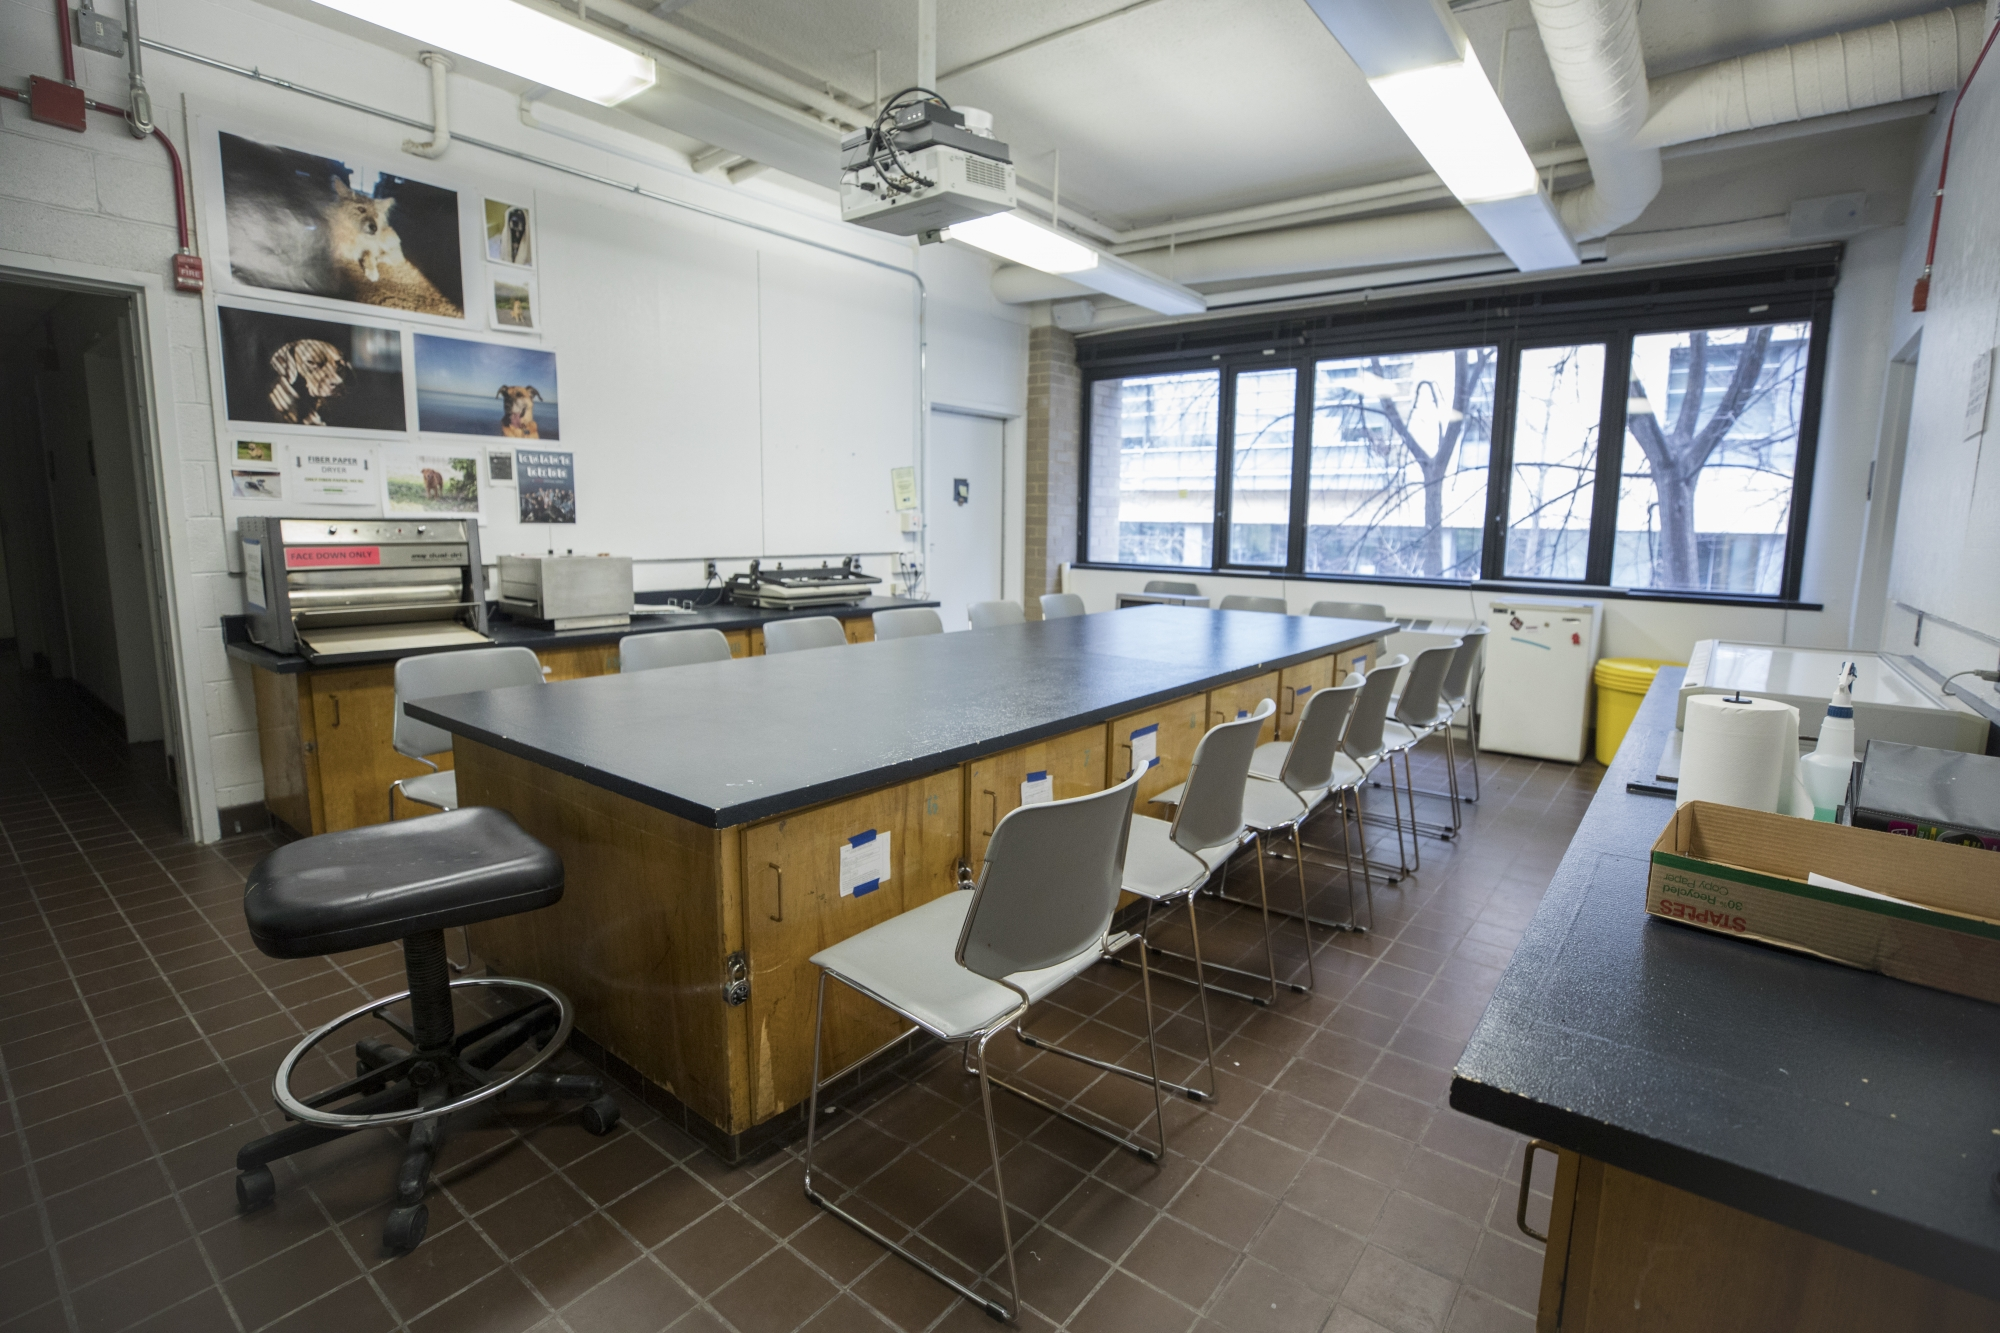 A long lab table with chairs around it in the center of a small classroom